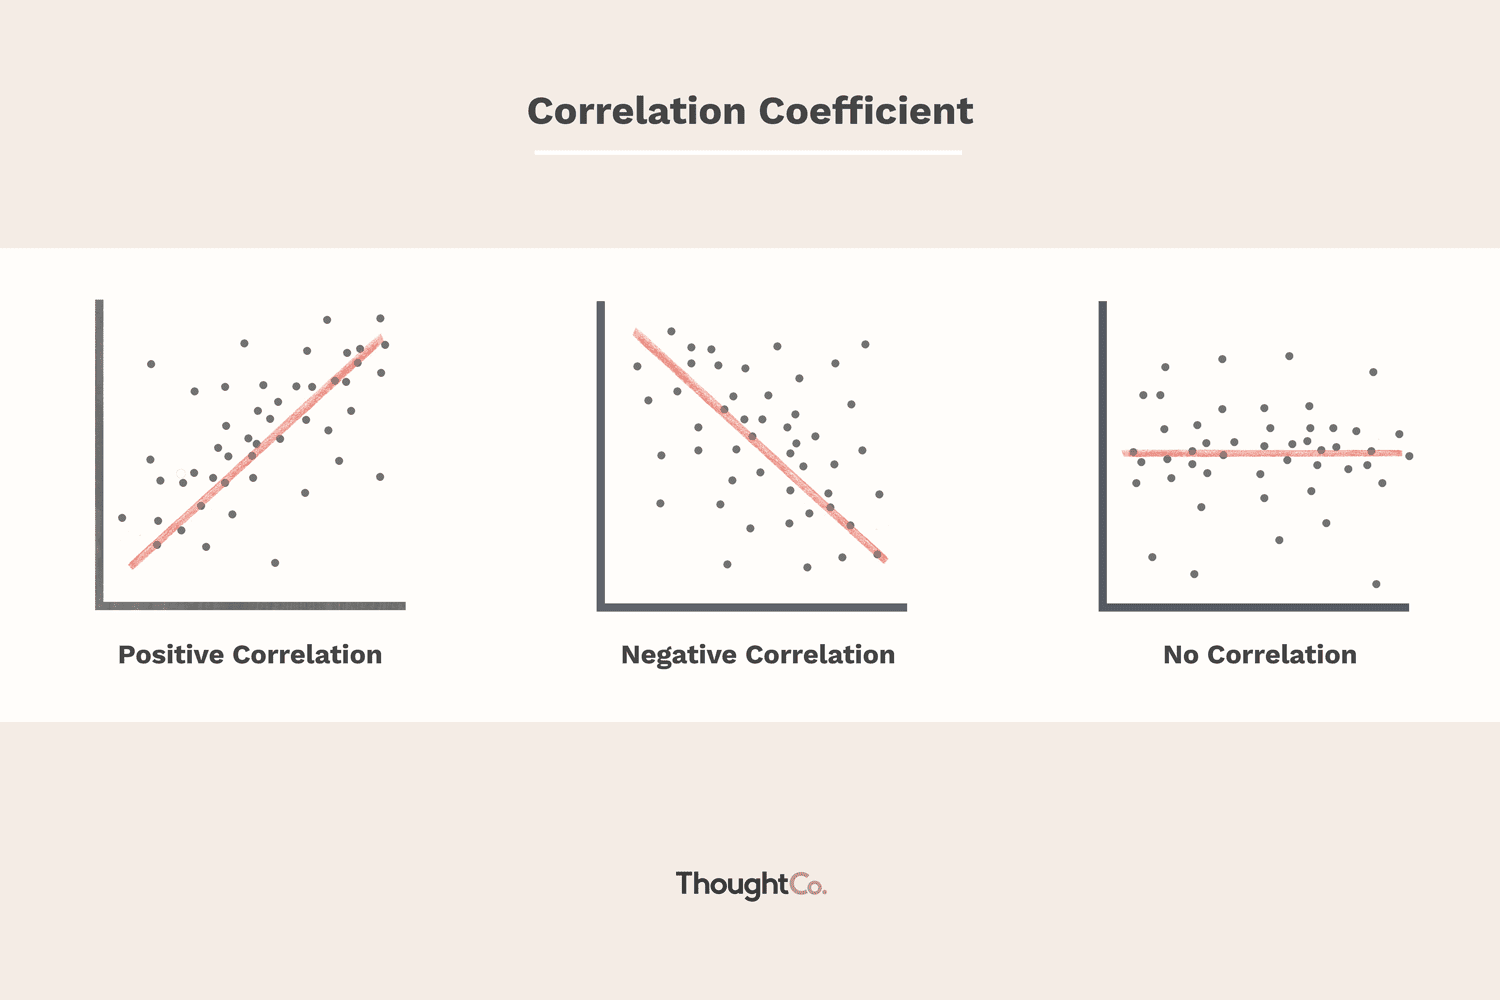 What Does It Mean If The Correlation Coefficient Is